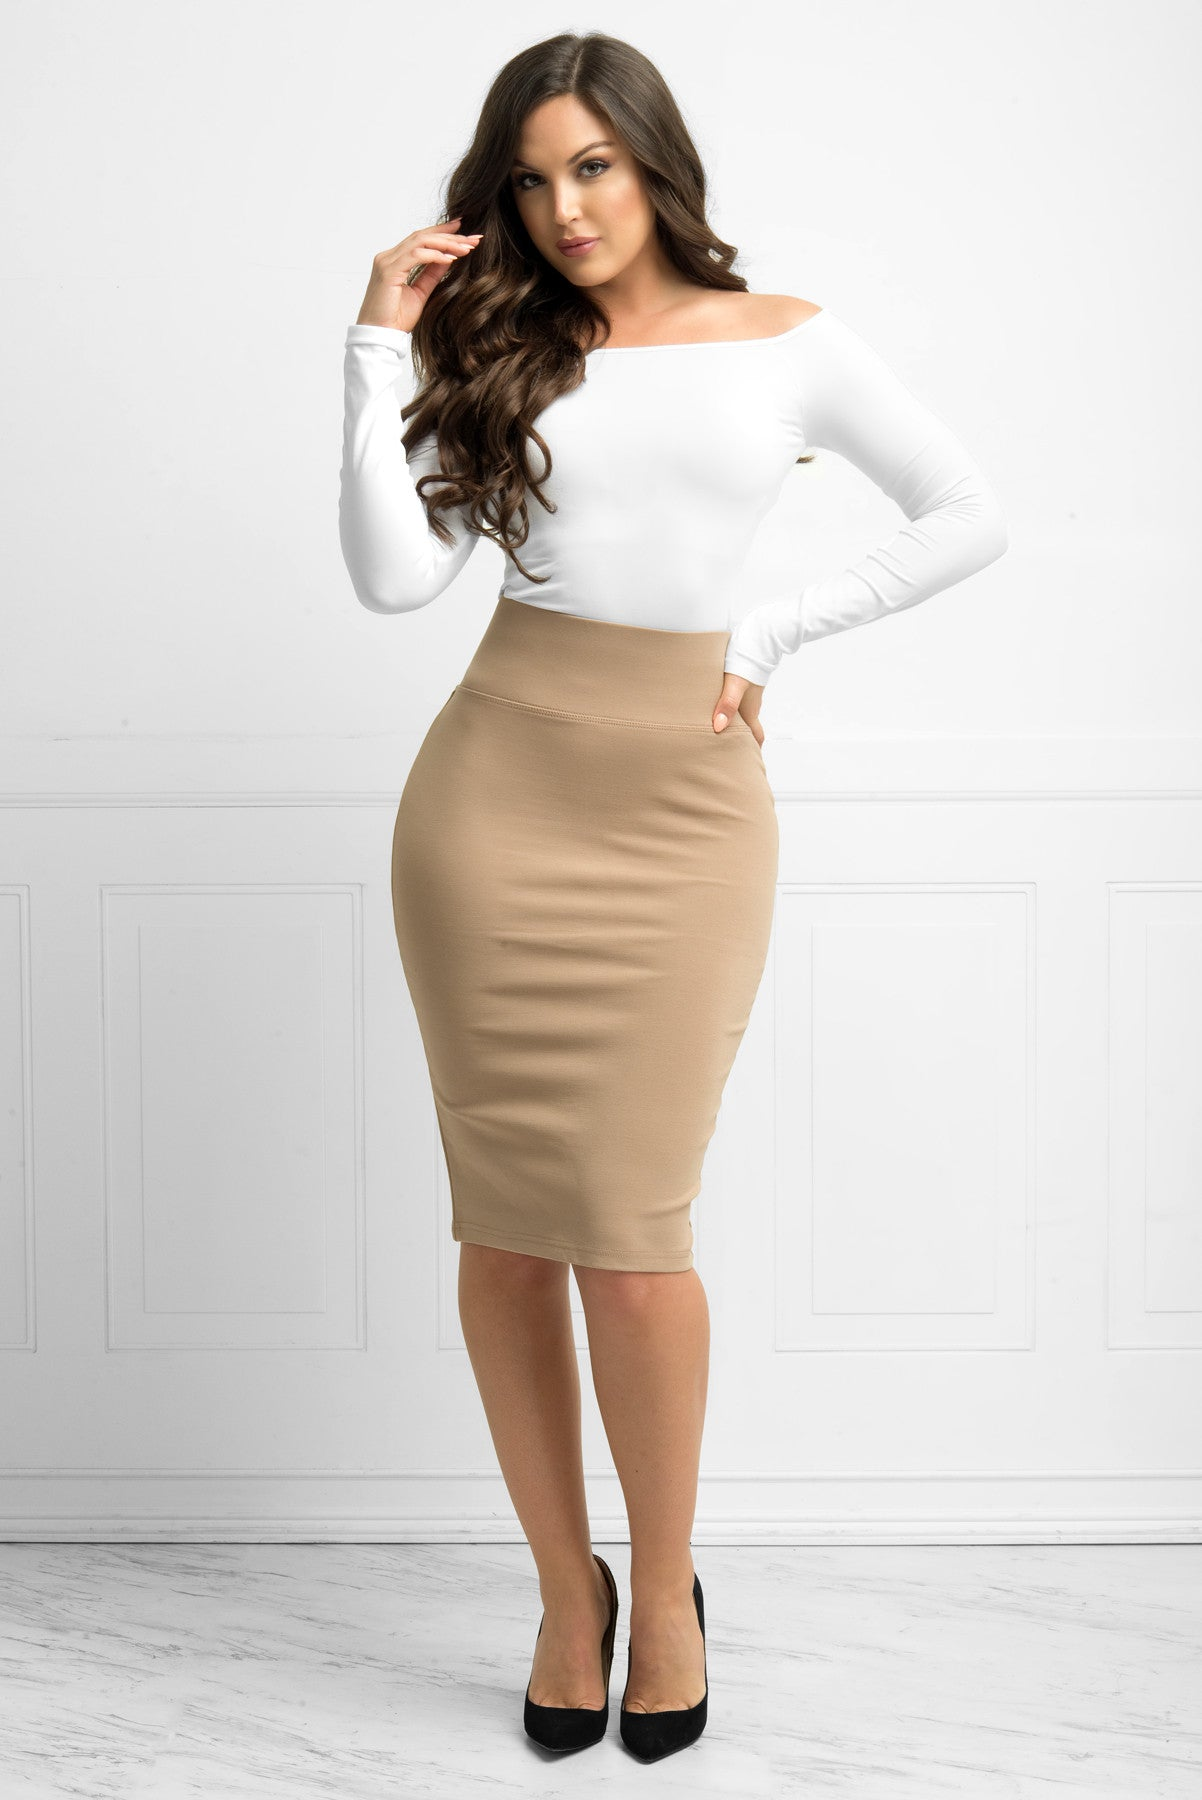 Andy Pencil Skirt Taupe - Fashion Effect Store  - 1